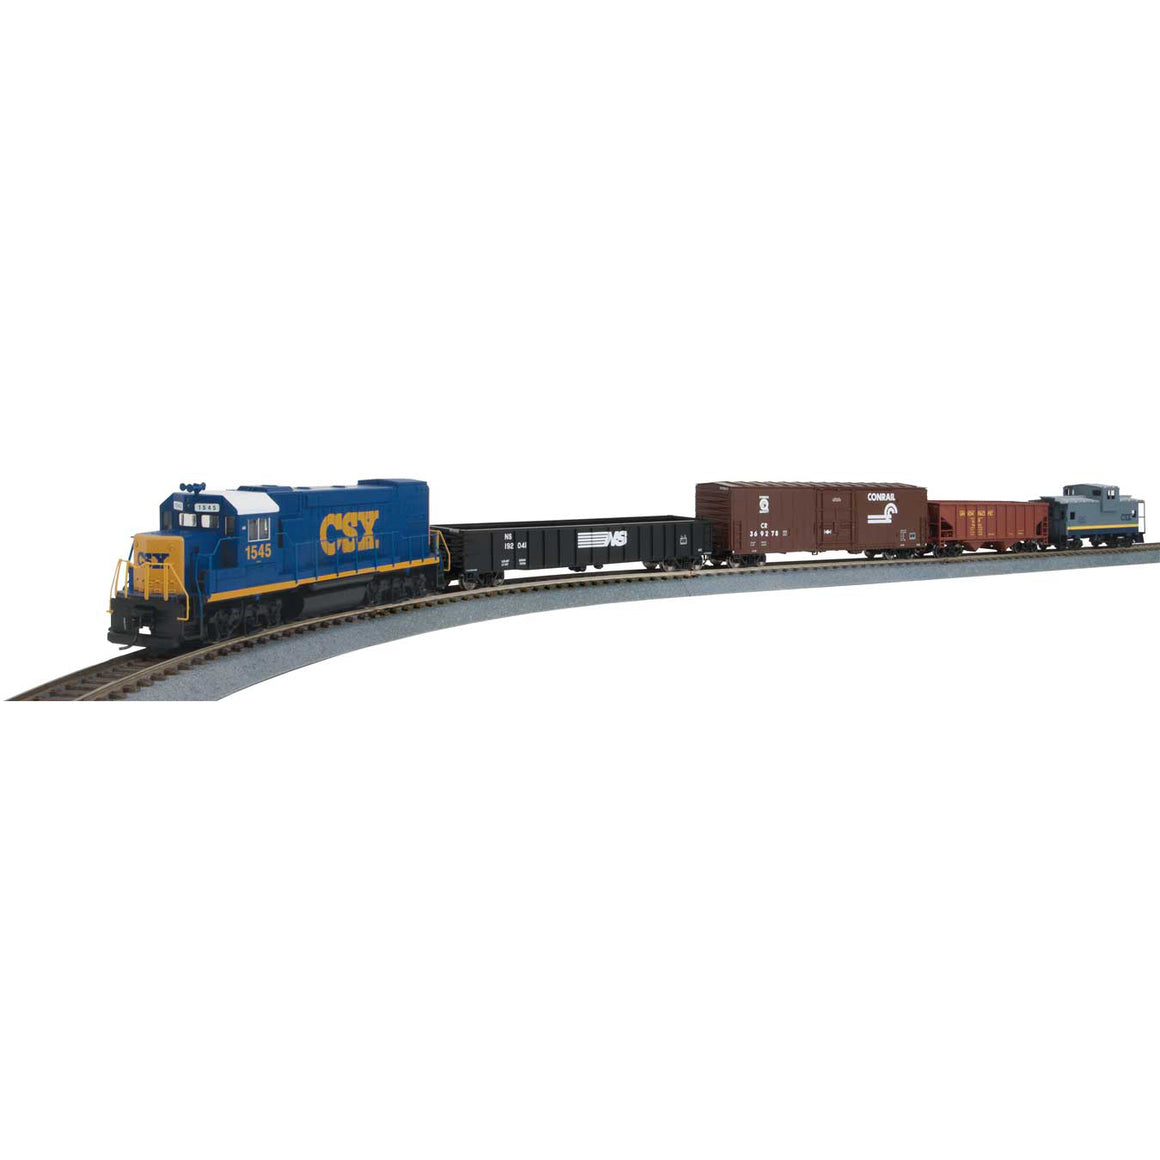 HO Scale: Flyer Express Train Sets - DC - CSX